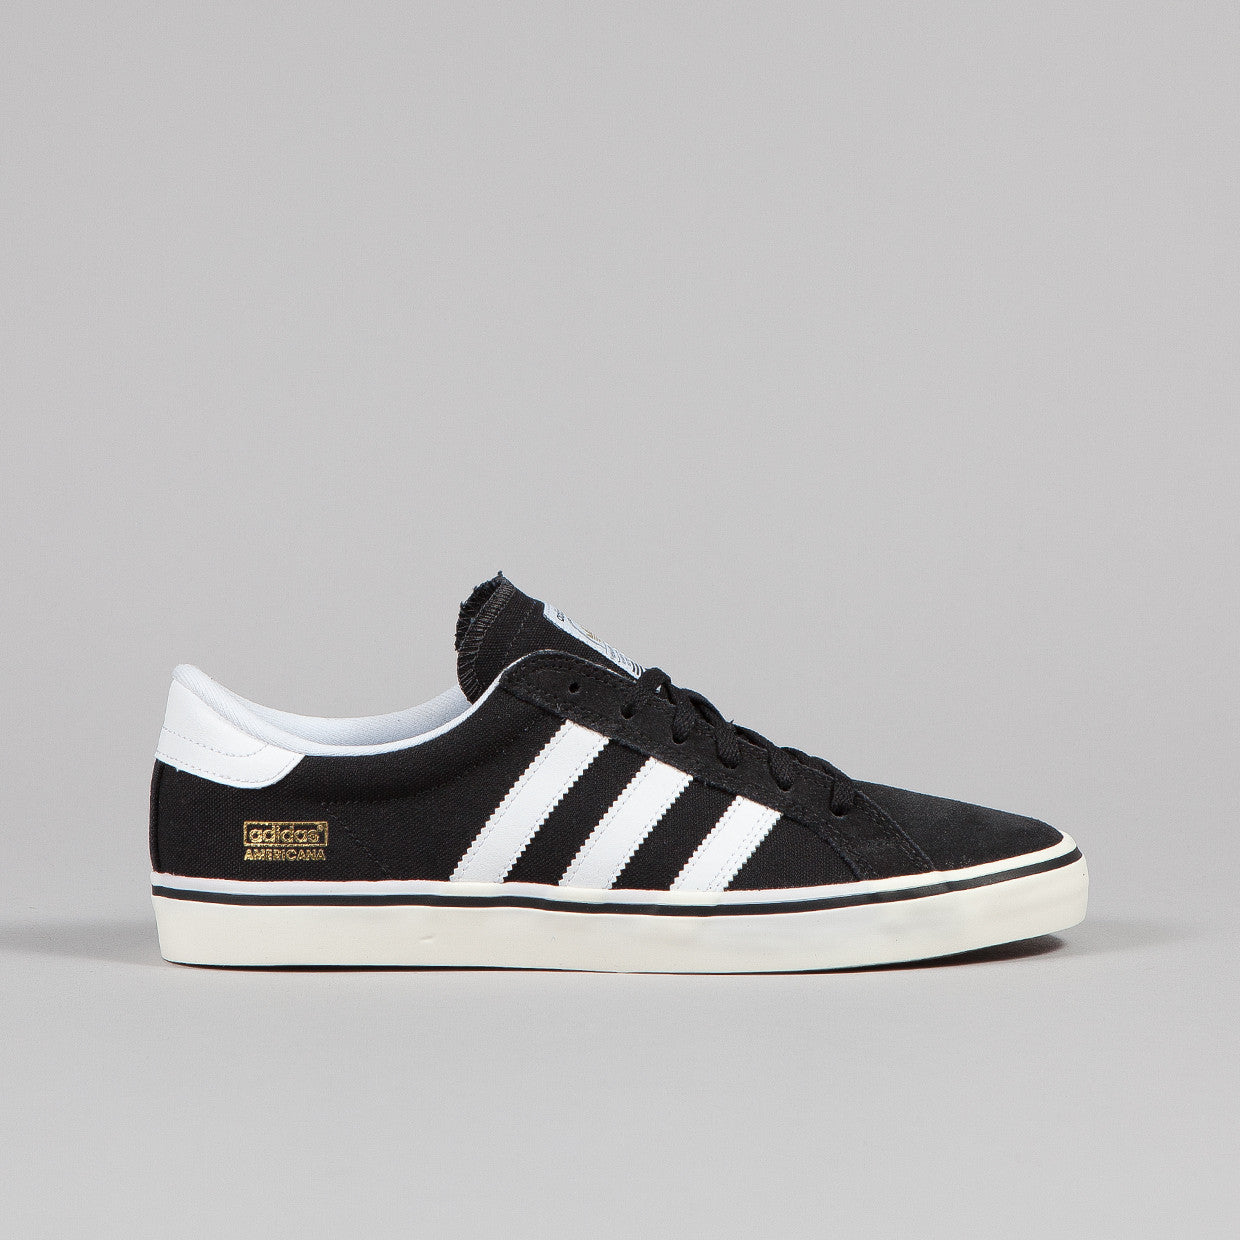 Adidas Americana Vin Low Black1 / Running White / Ecru